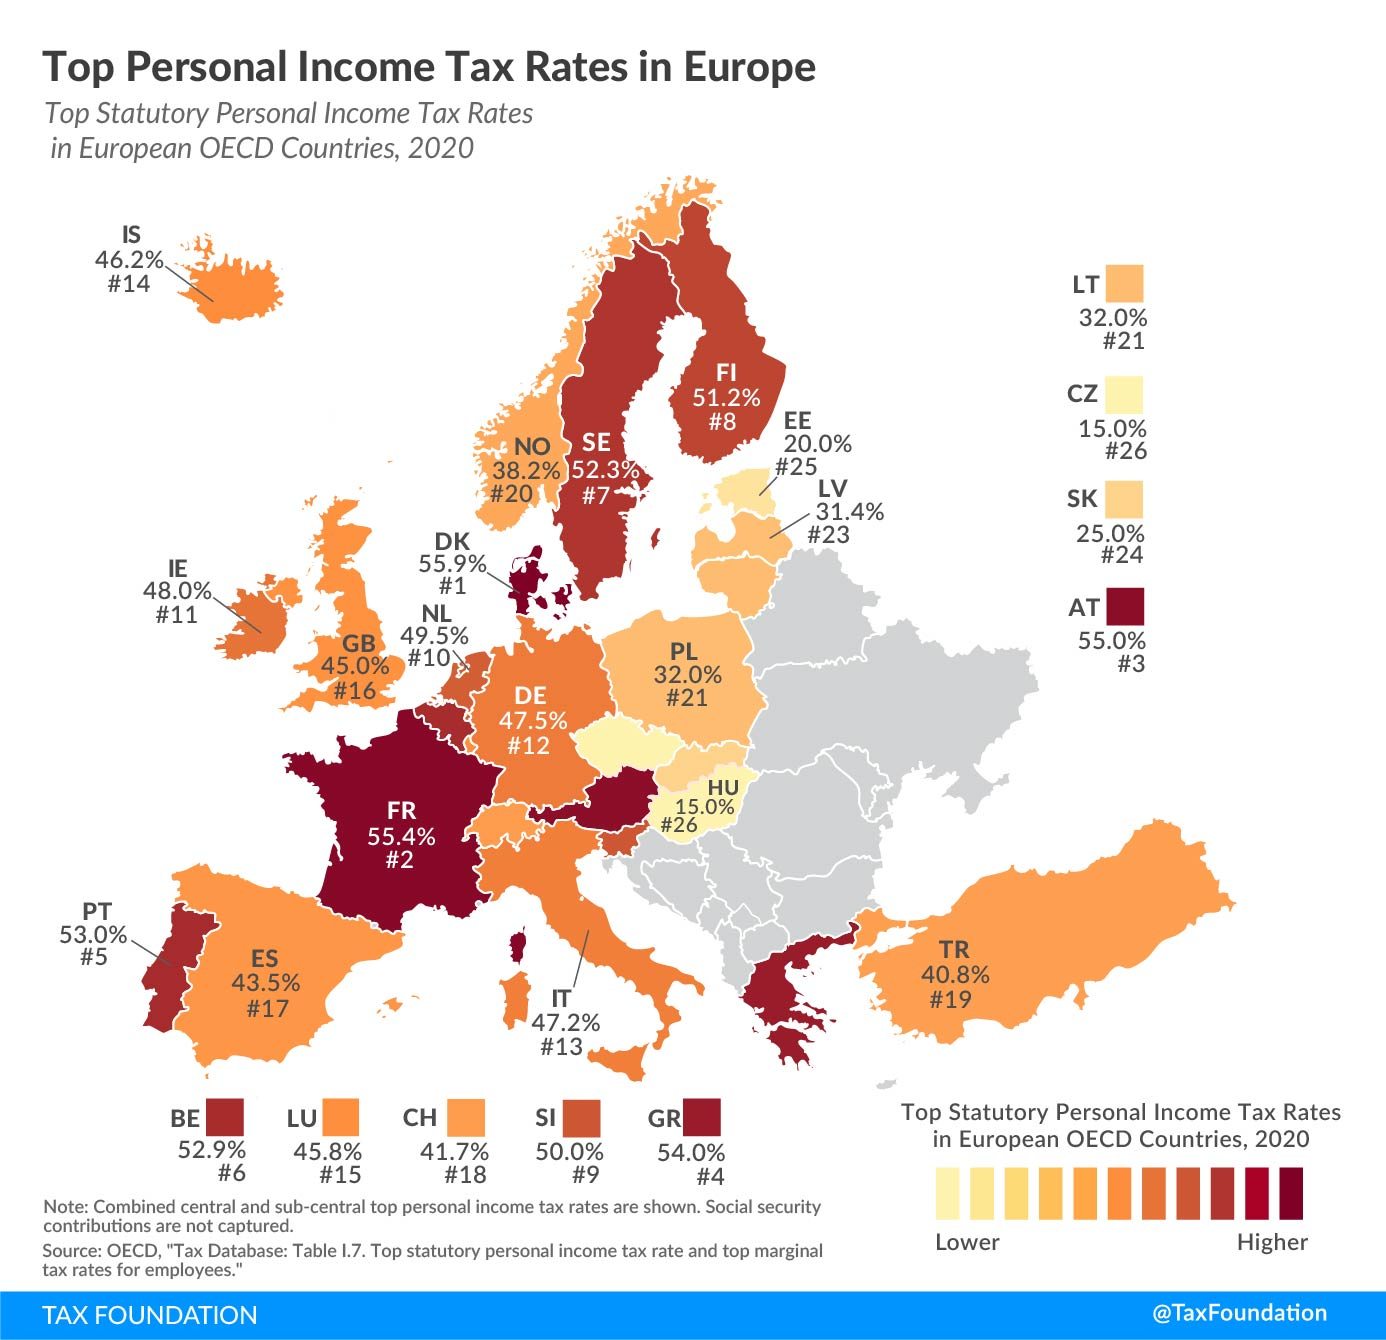 Top Personal Income Tax Rates in Europe